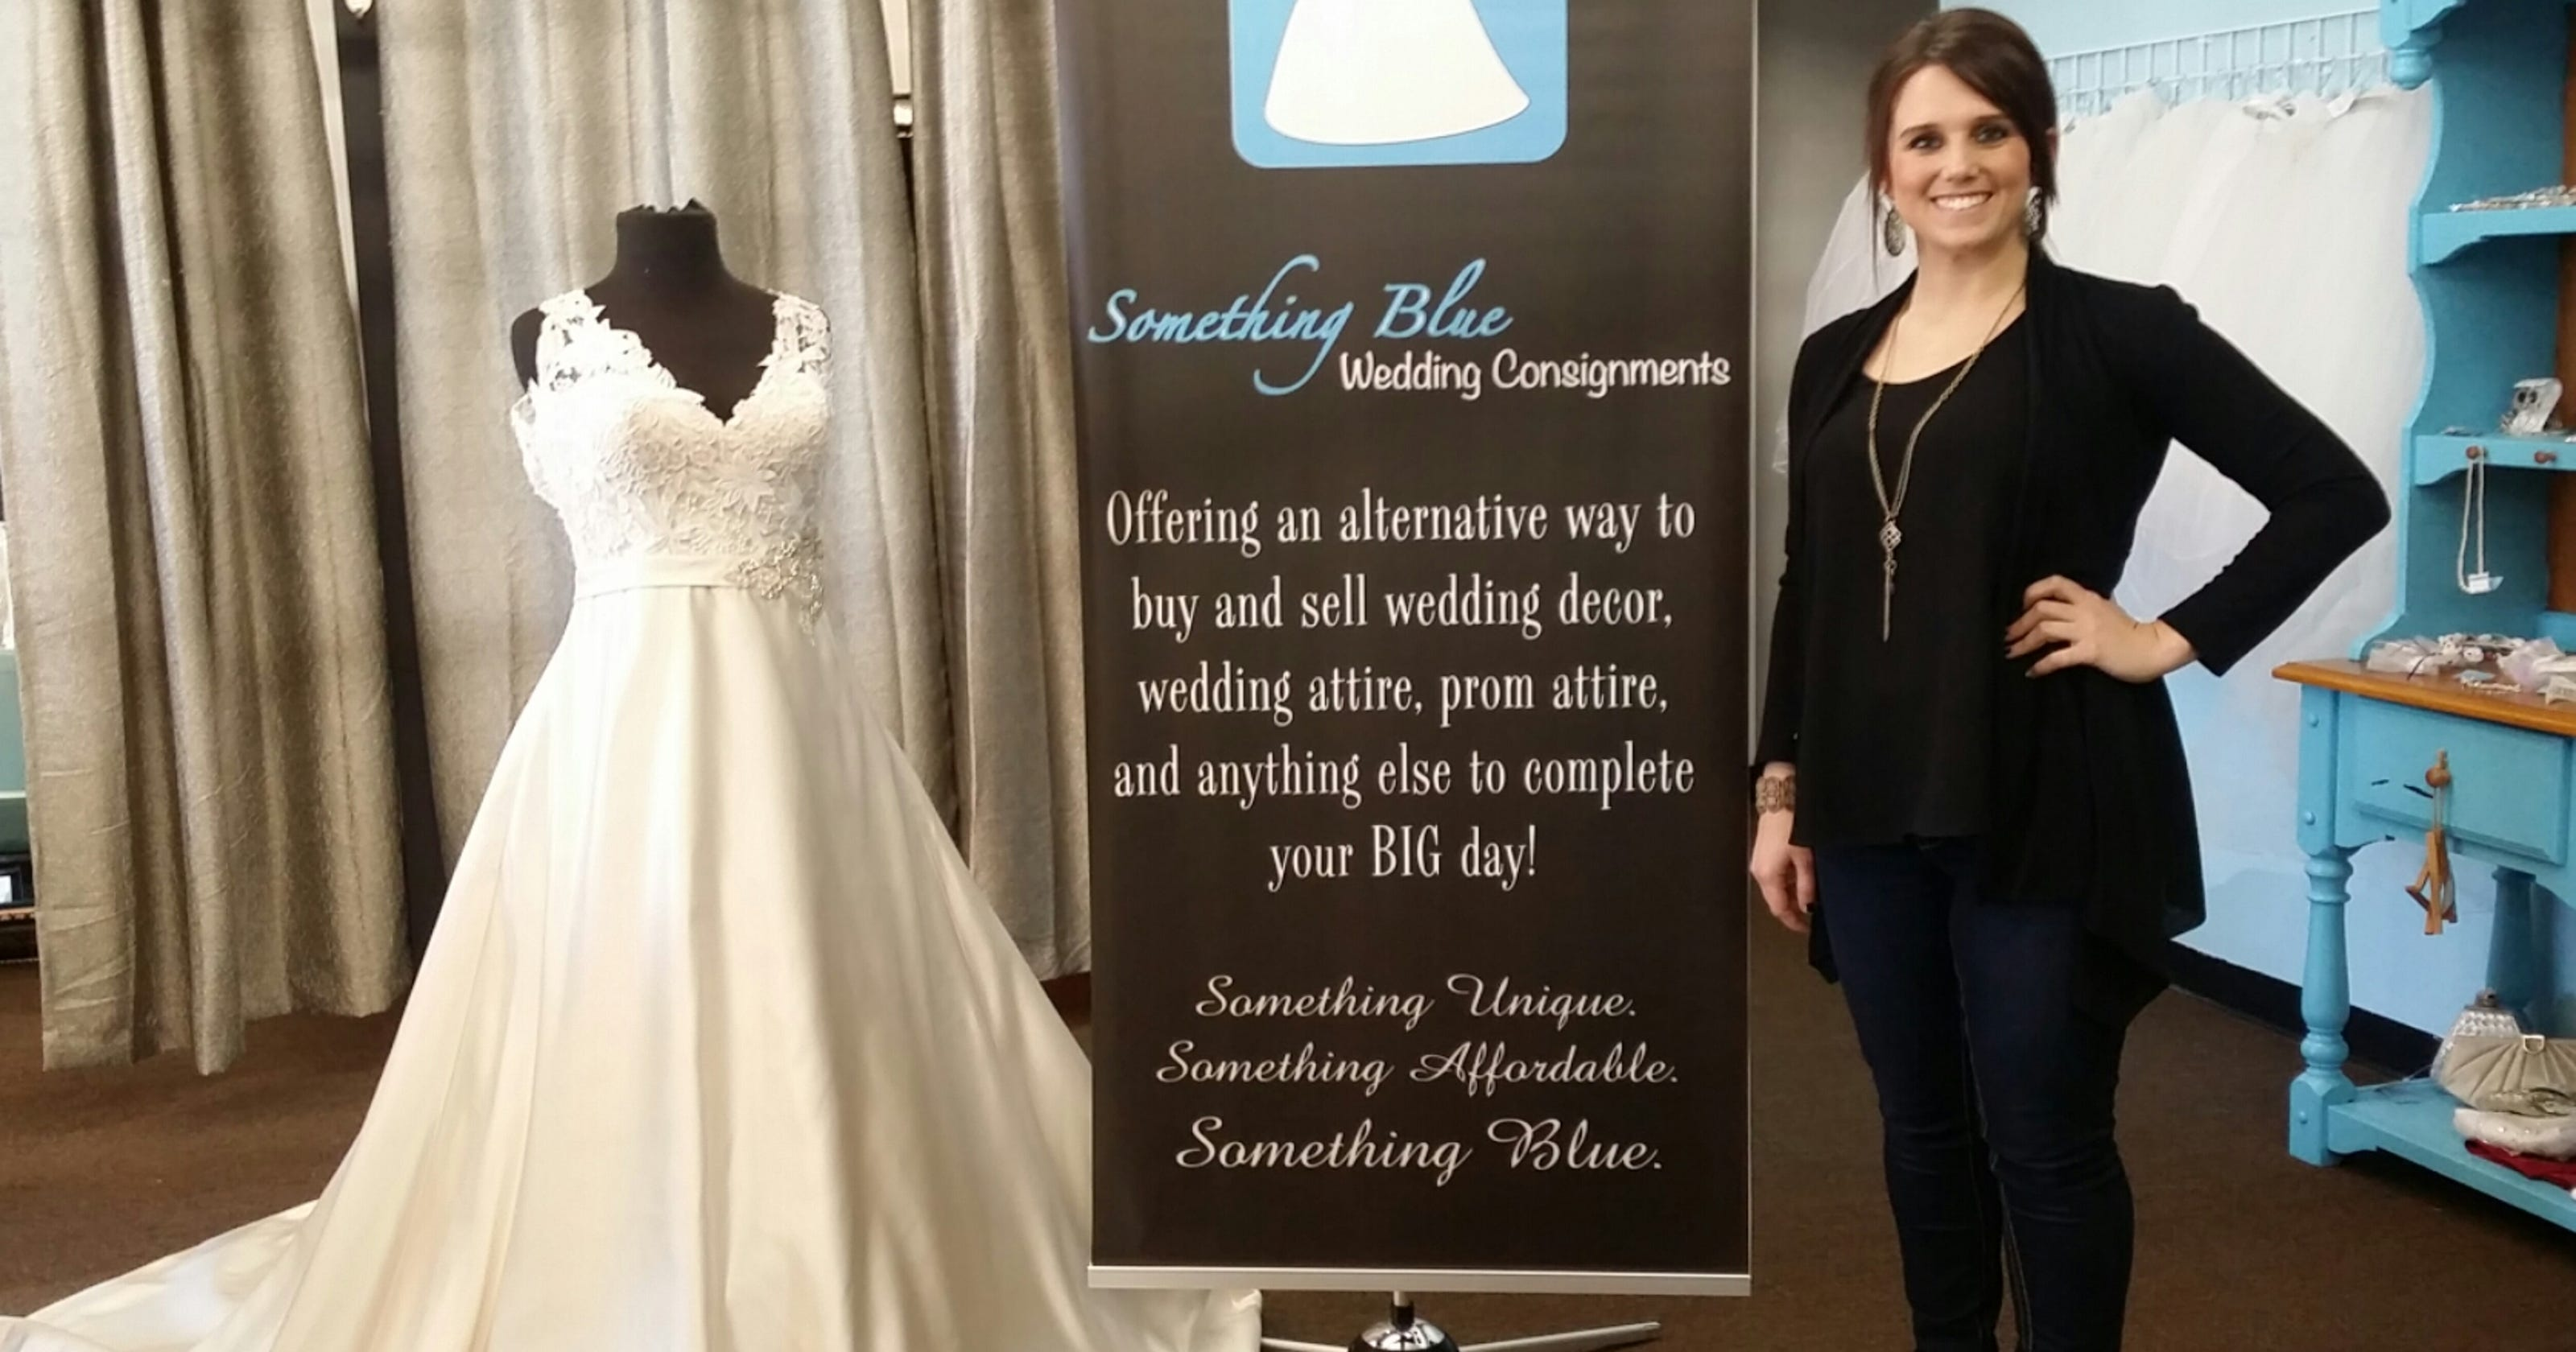 Something Blue Carries New Used Wedding Items